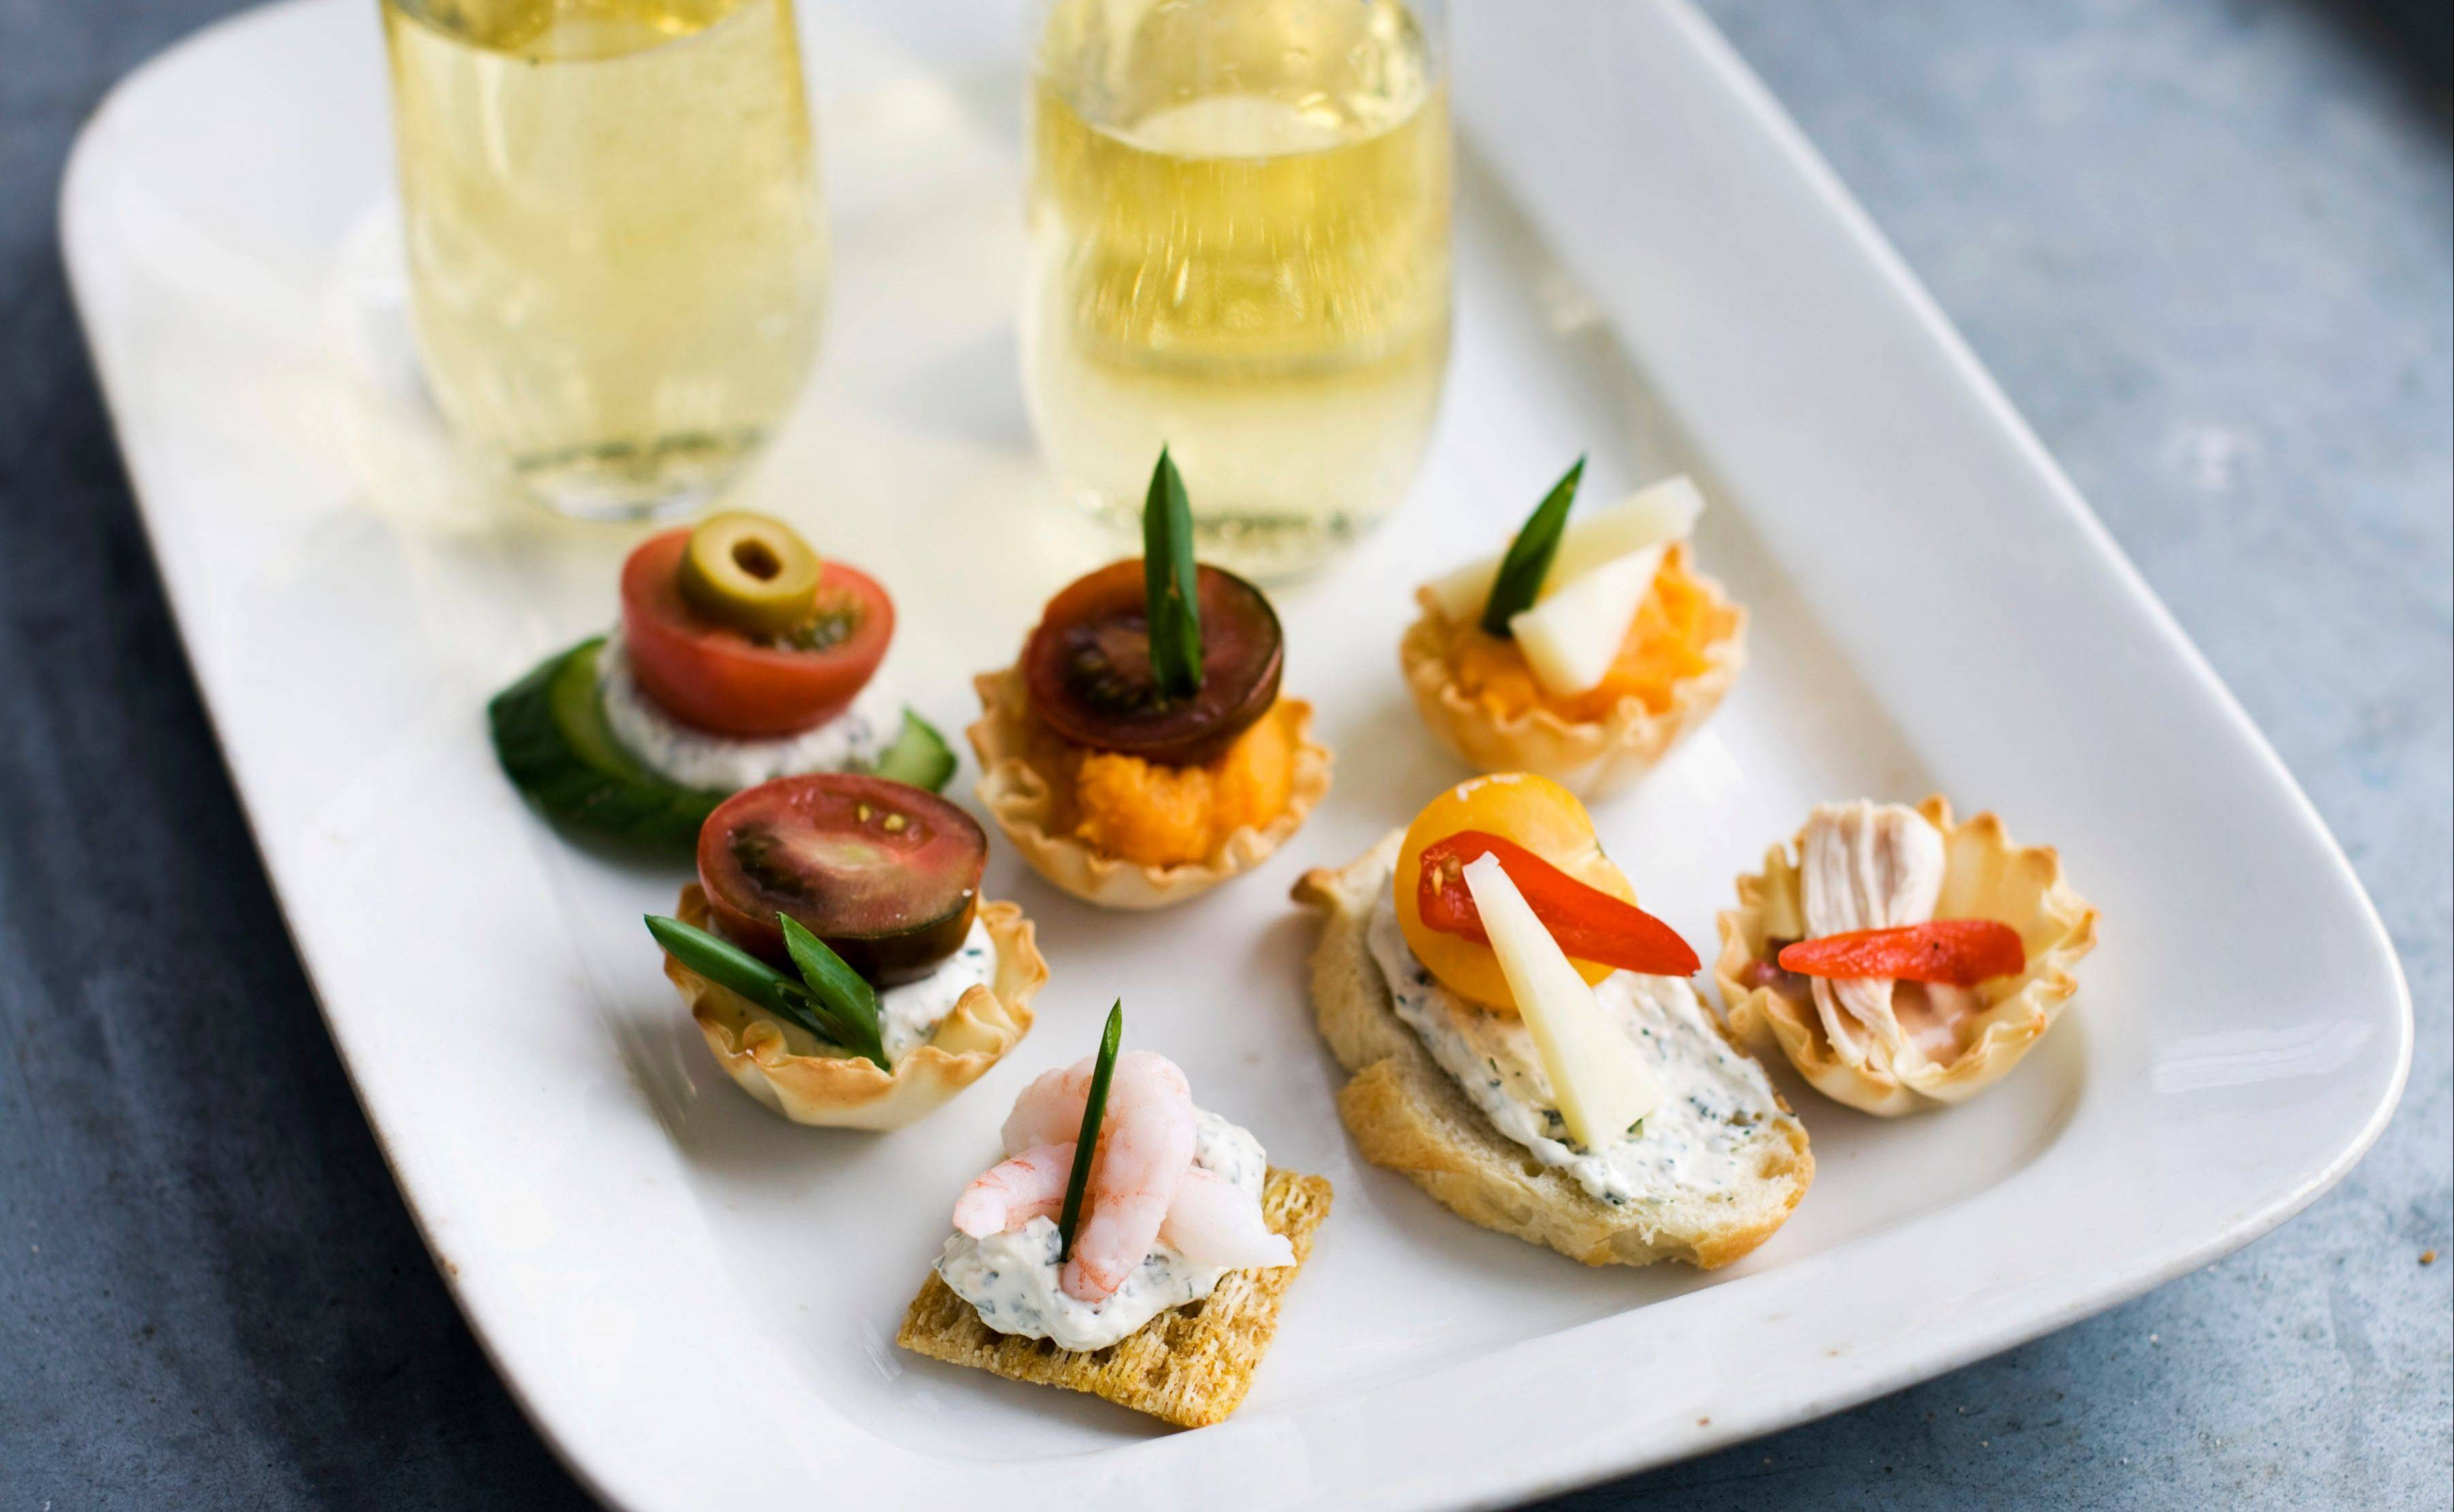 Using a building block approach to Oscar party canapes, diners are able to select from a buffet of ingredients -- from bases and spreads to toppings and garnishes -- to design snacks that suit their preferences.